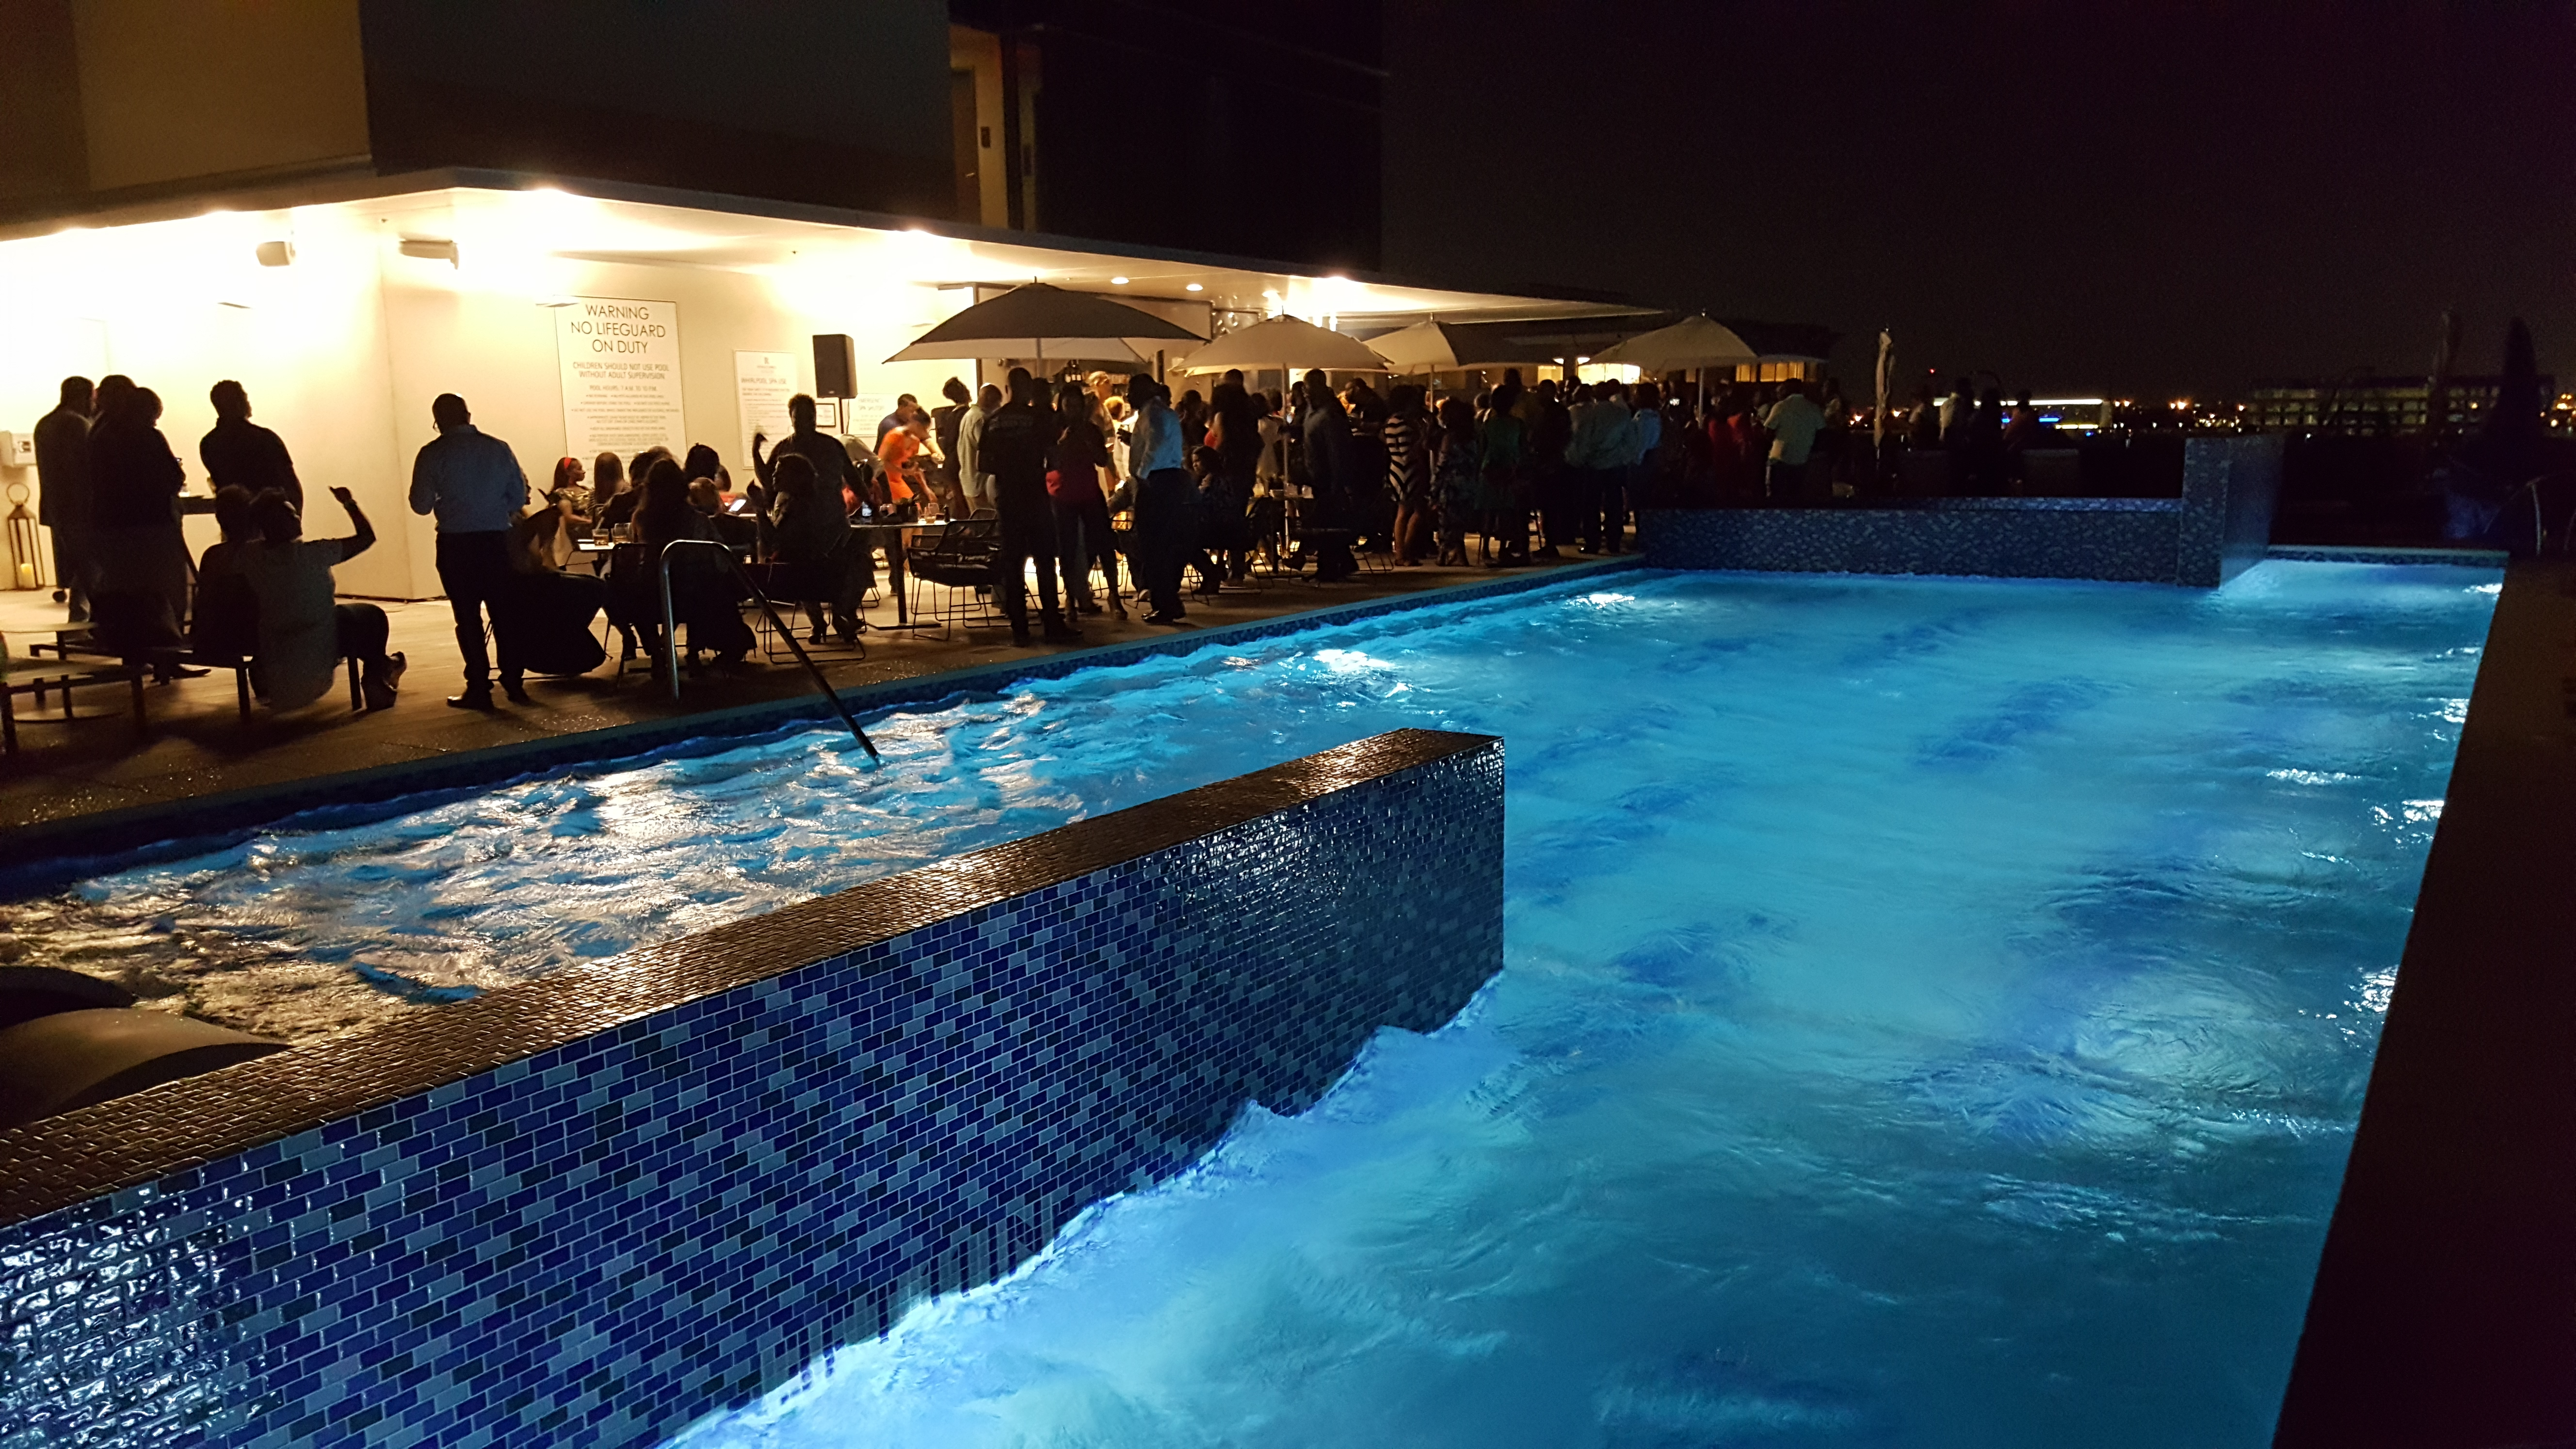 The Upscale Urban Mixer in Legacy West Plano Was a Good Look